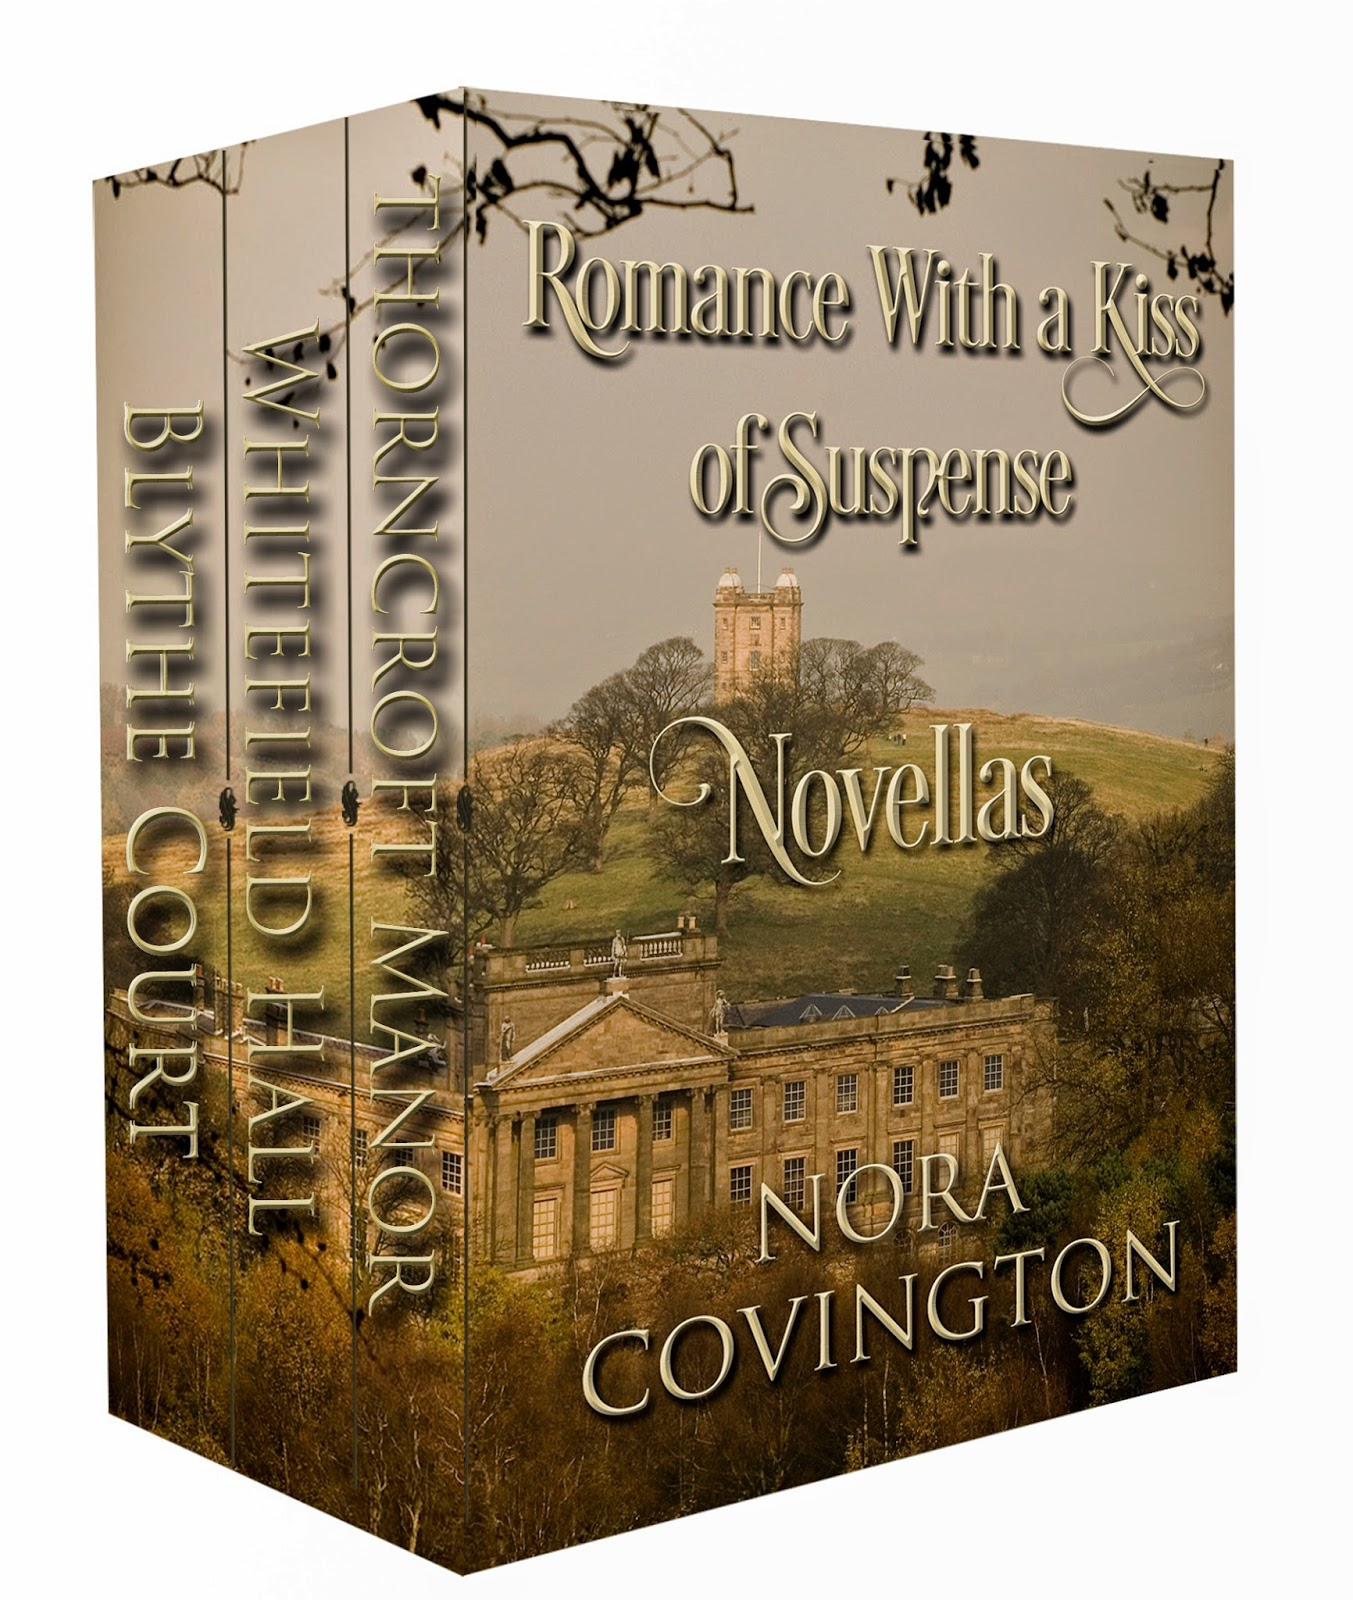 Box Set Romance With a Kiss of Suspense ($3.99)